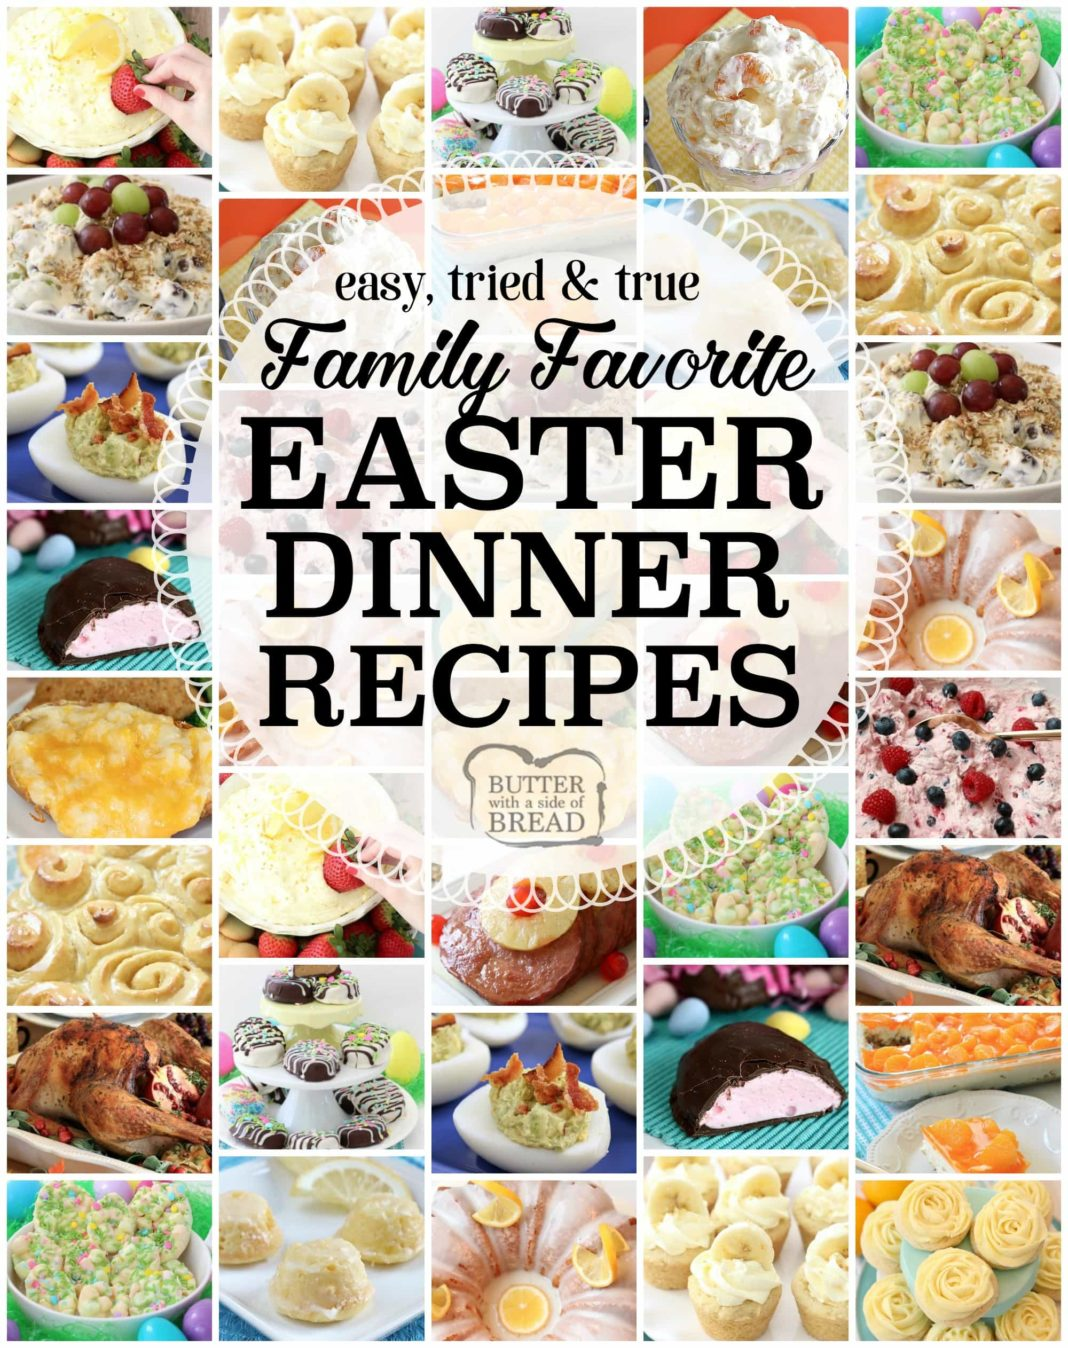 Easy delicious easter dinner recipes butter with a side of bread easter dinner recipes tried and true easy easter dinner recipes with everything from slow cooker ham to orange cream fruit salad banana cream pie cookies forumfinder Images